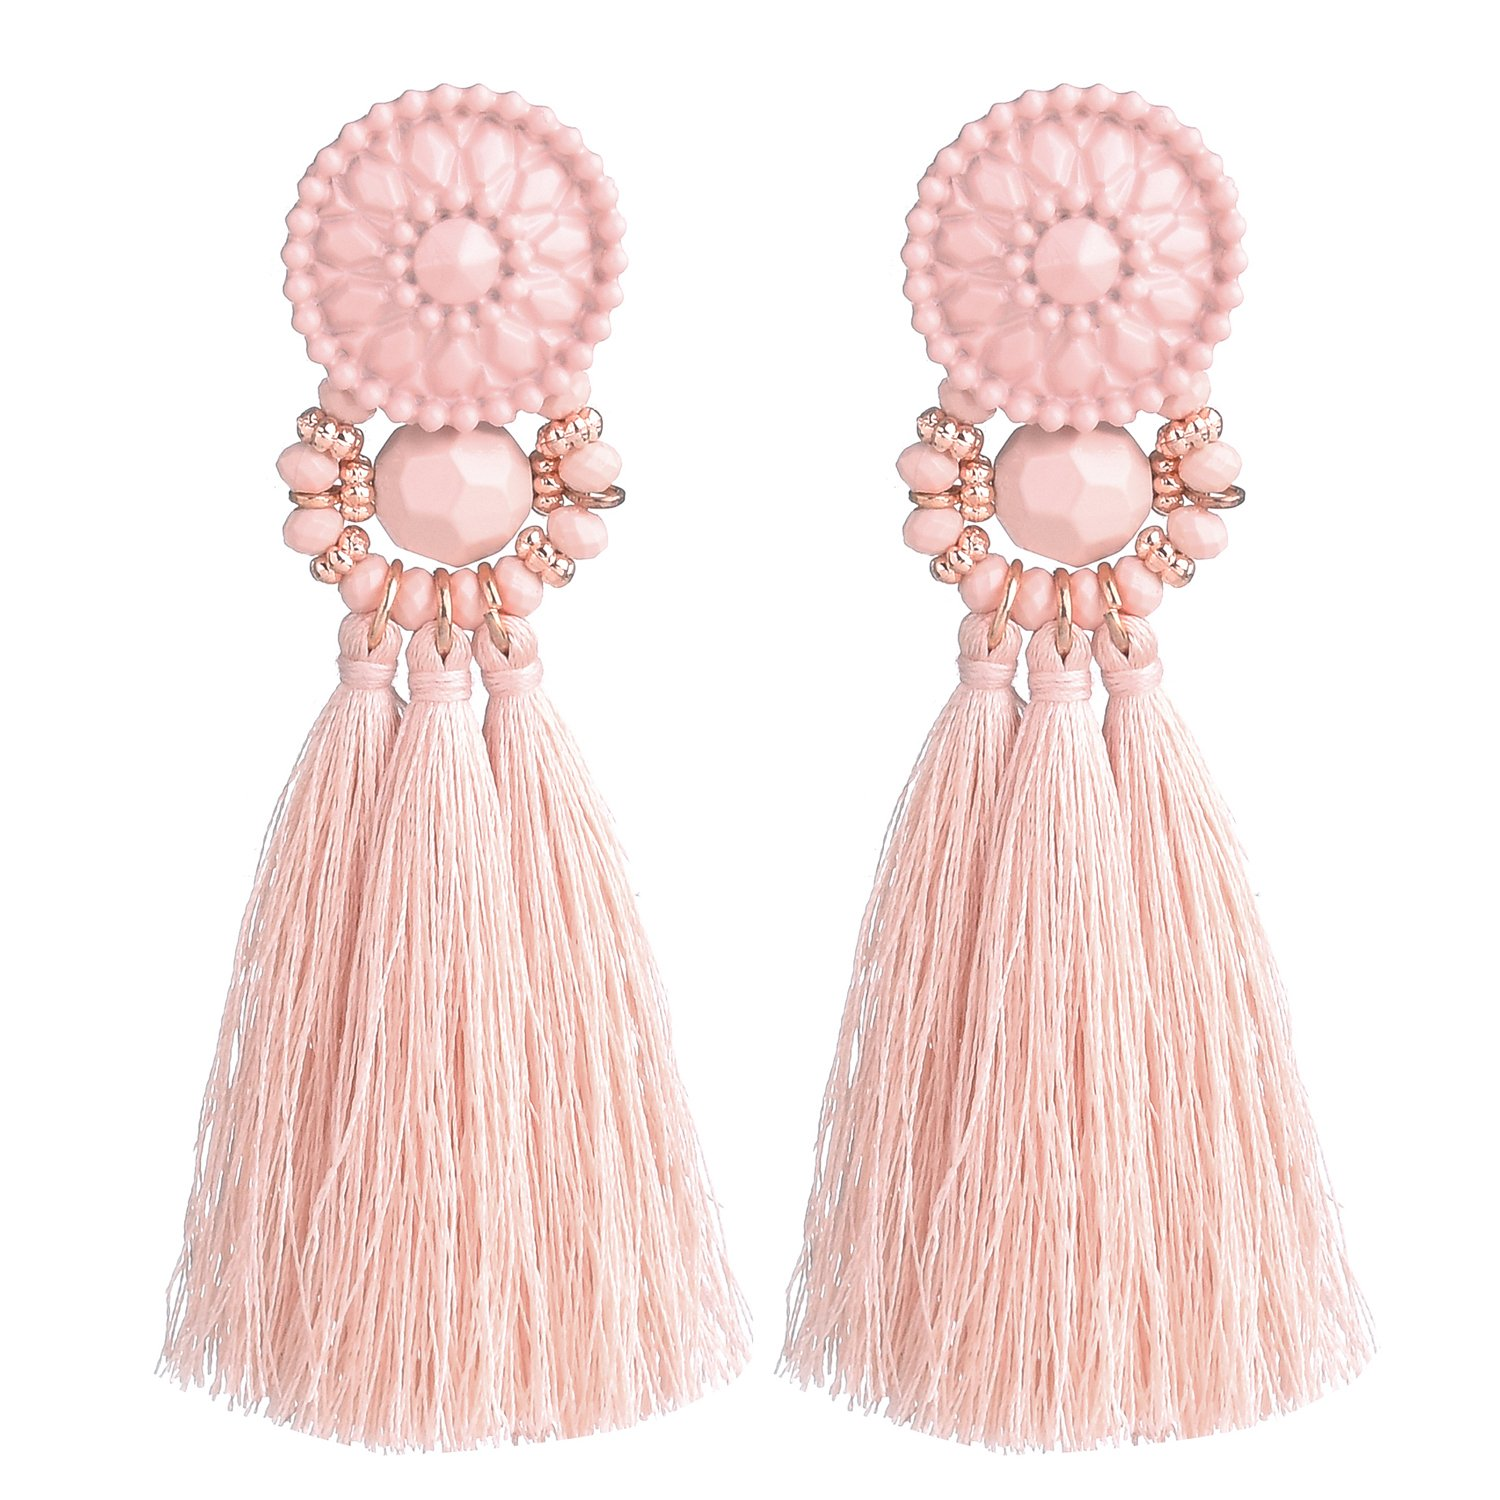 D EXCEED Womens Fashion Statement Thread Tassel Earrings Bohemian Handmade Facet Bead Chandelier Earrings Tassel Dangle Drop Earrings Pink